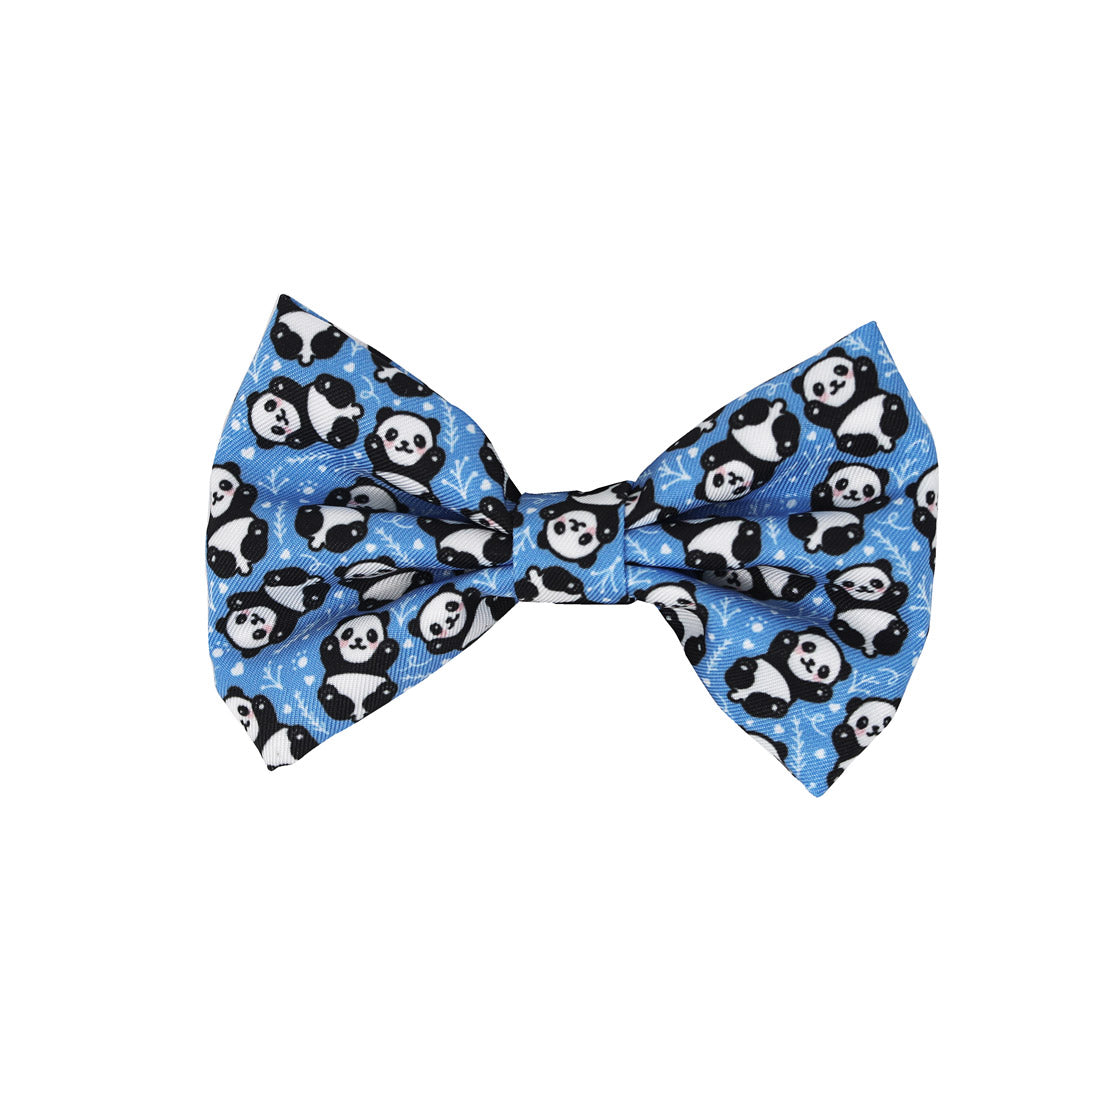 Dog Bow Tie - Roly Poly Panda - Blue Paw Co.